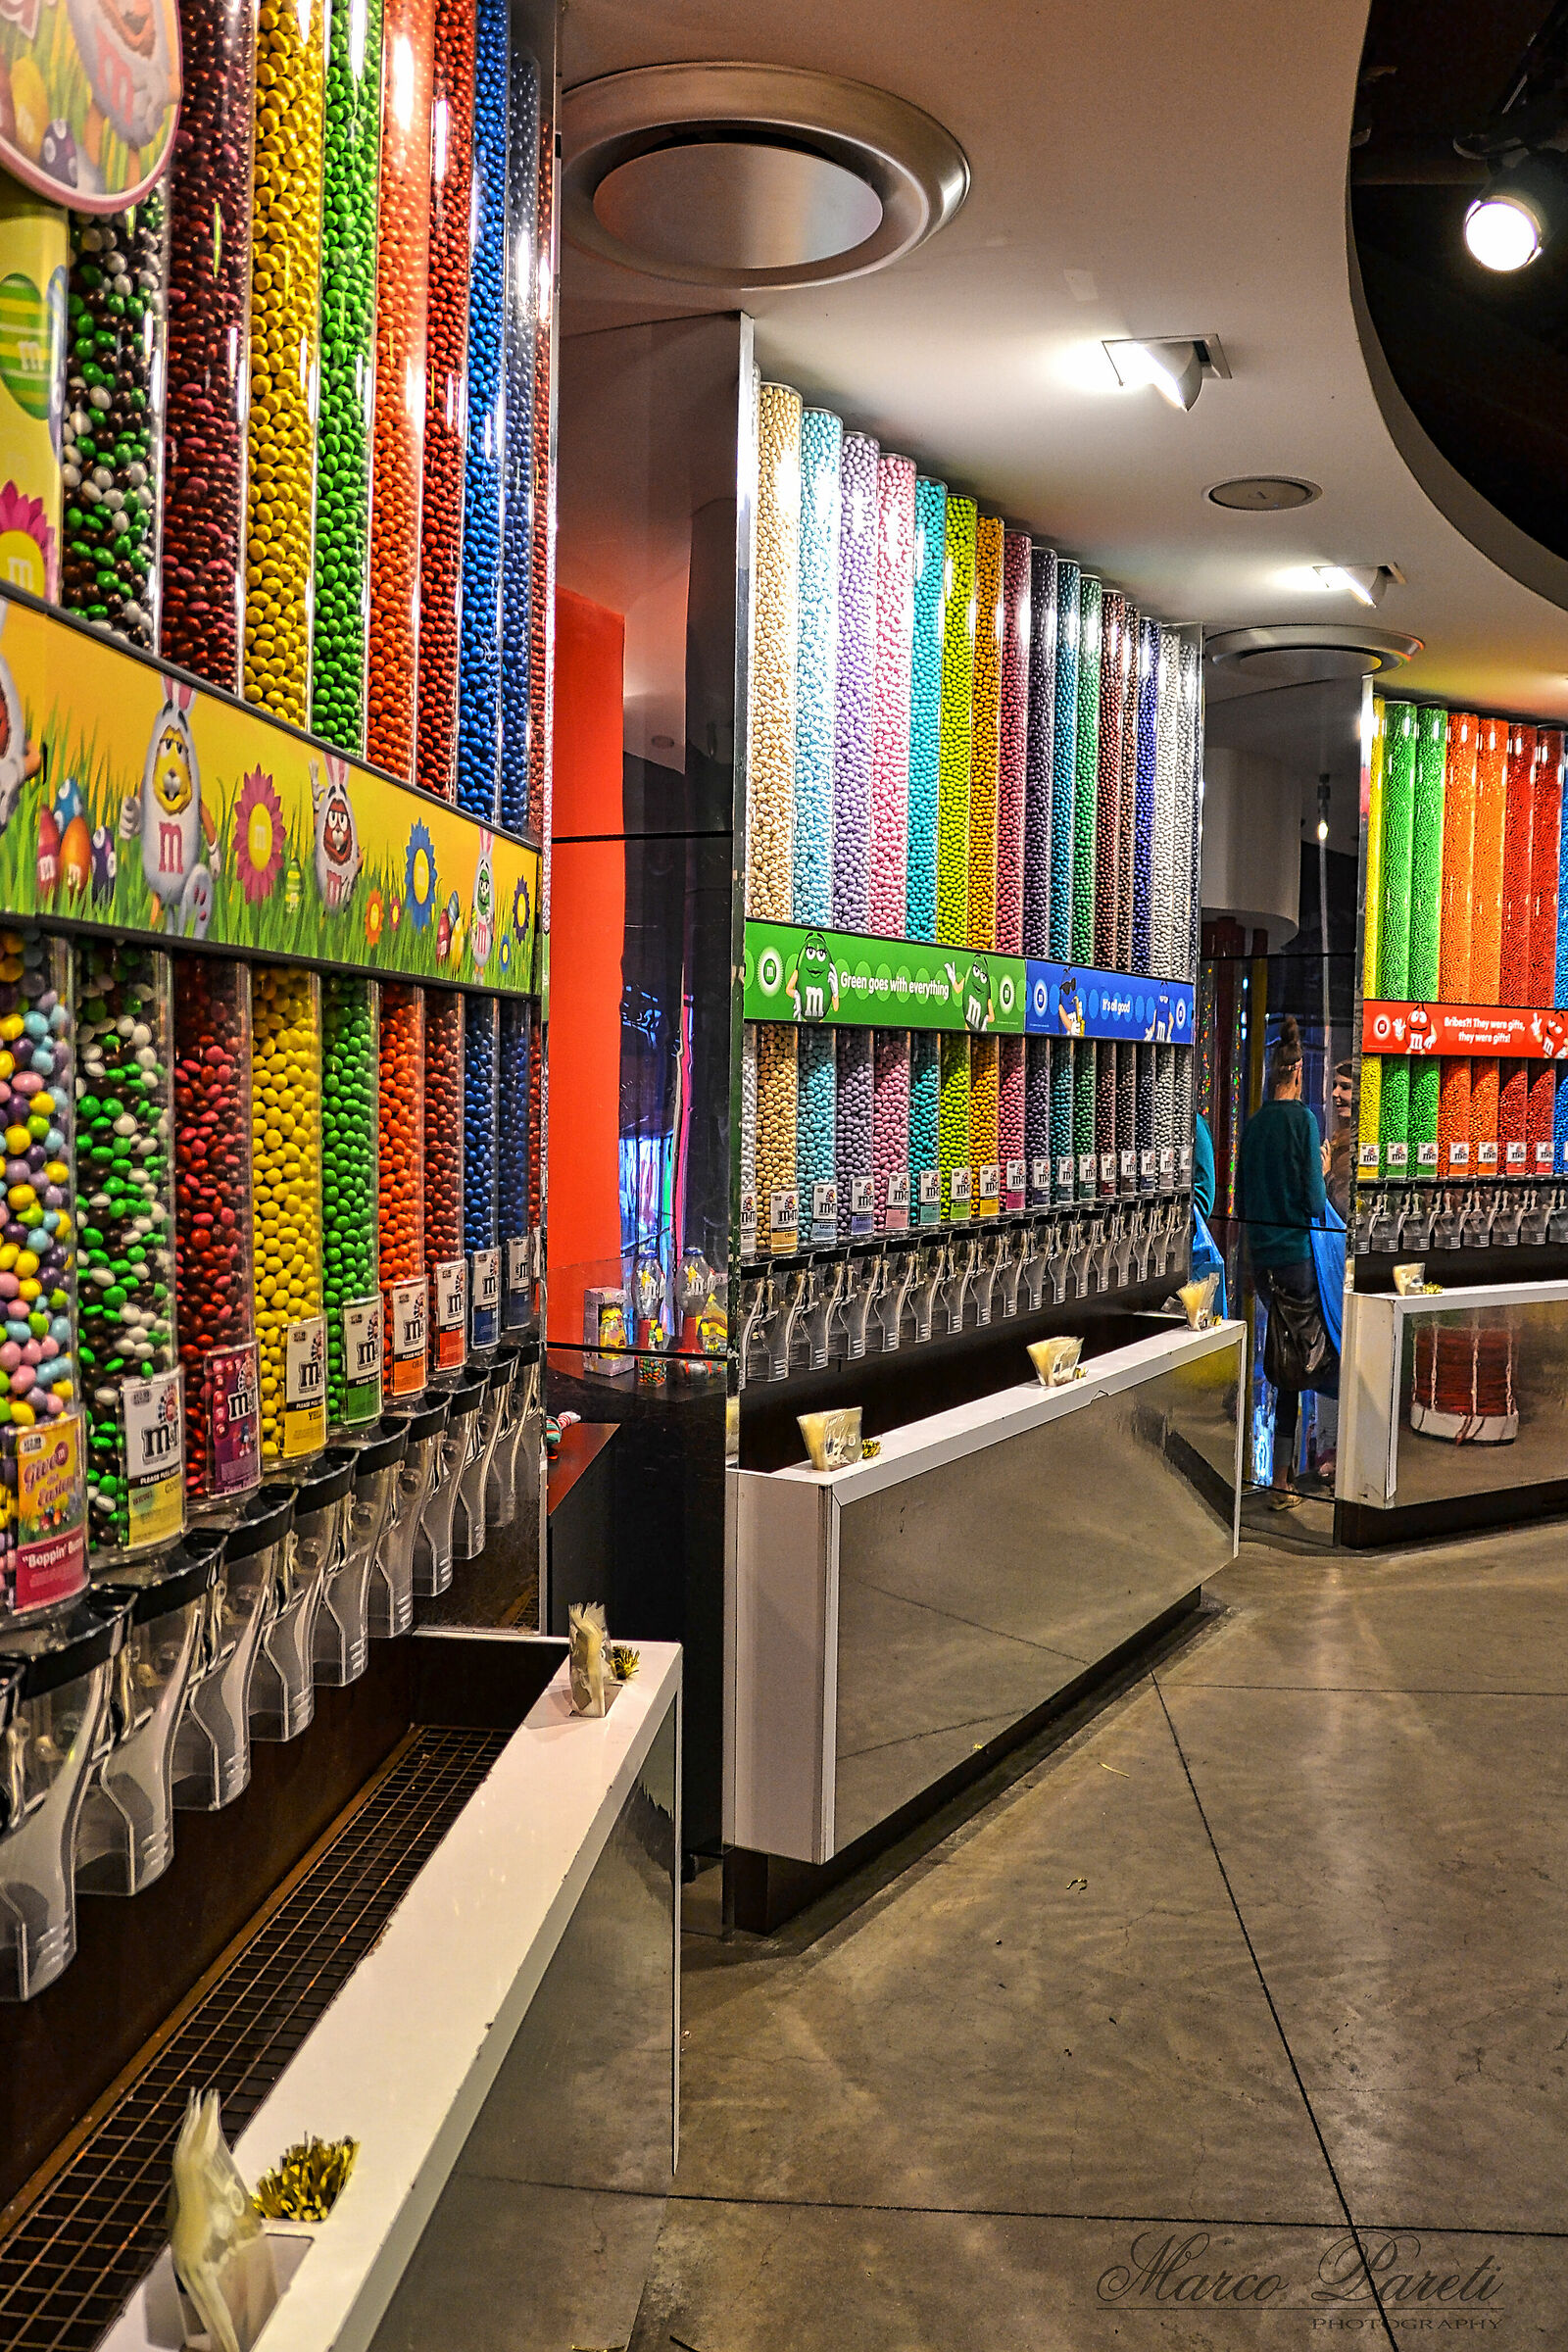 m&m's store...